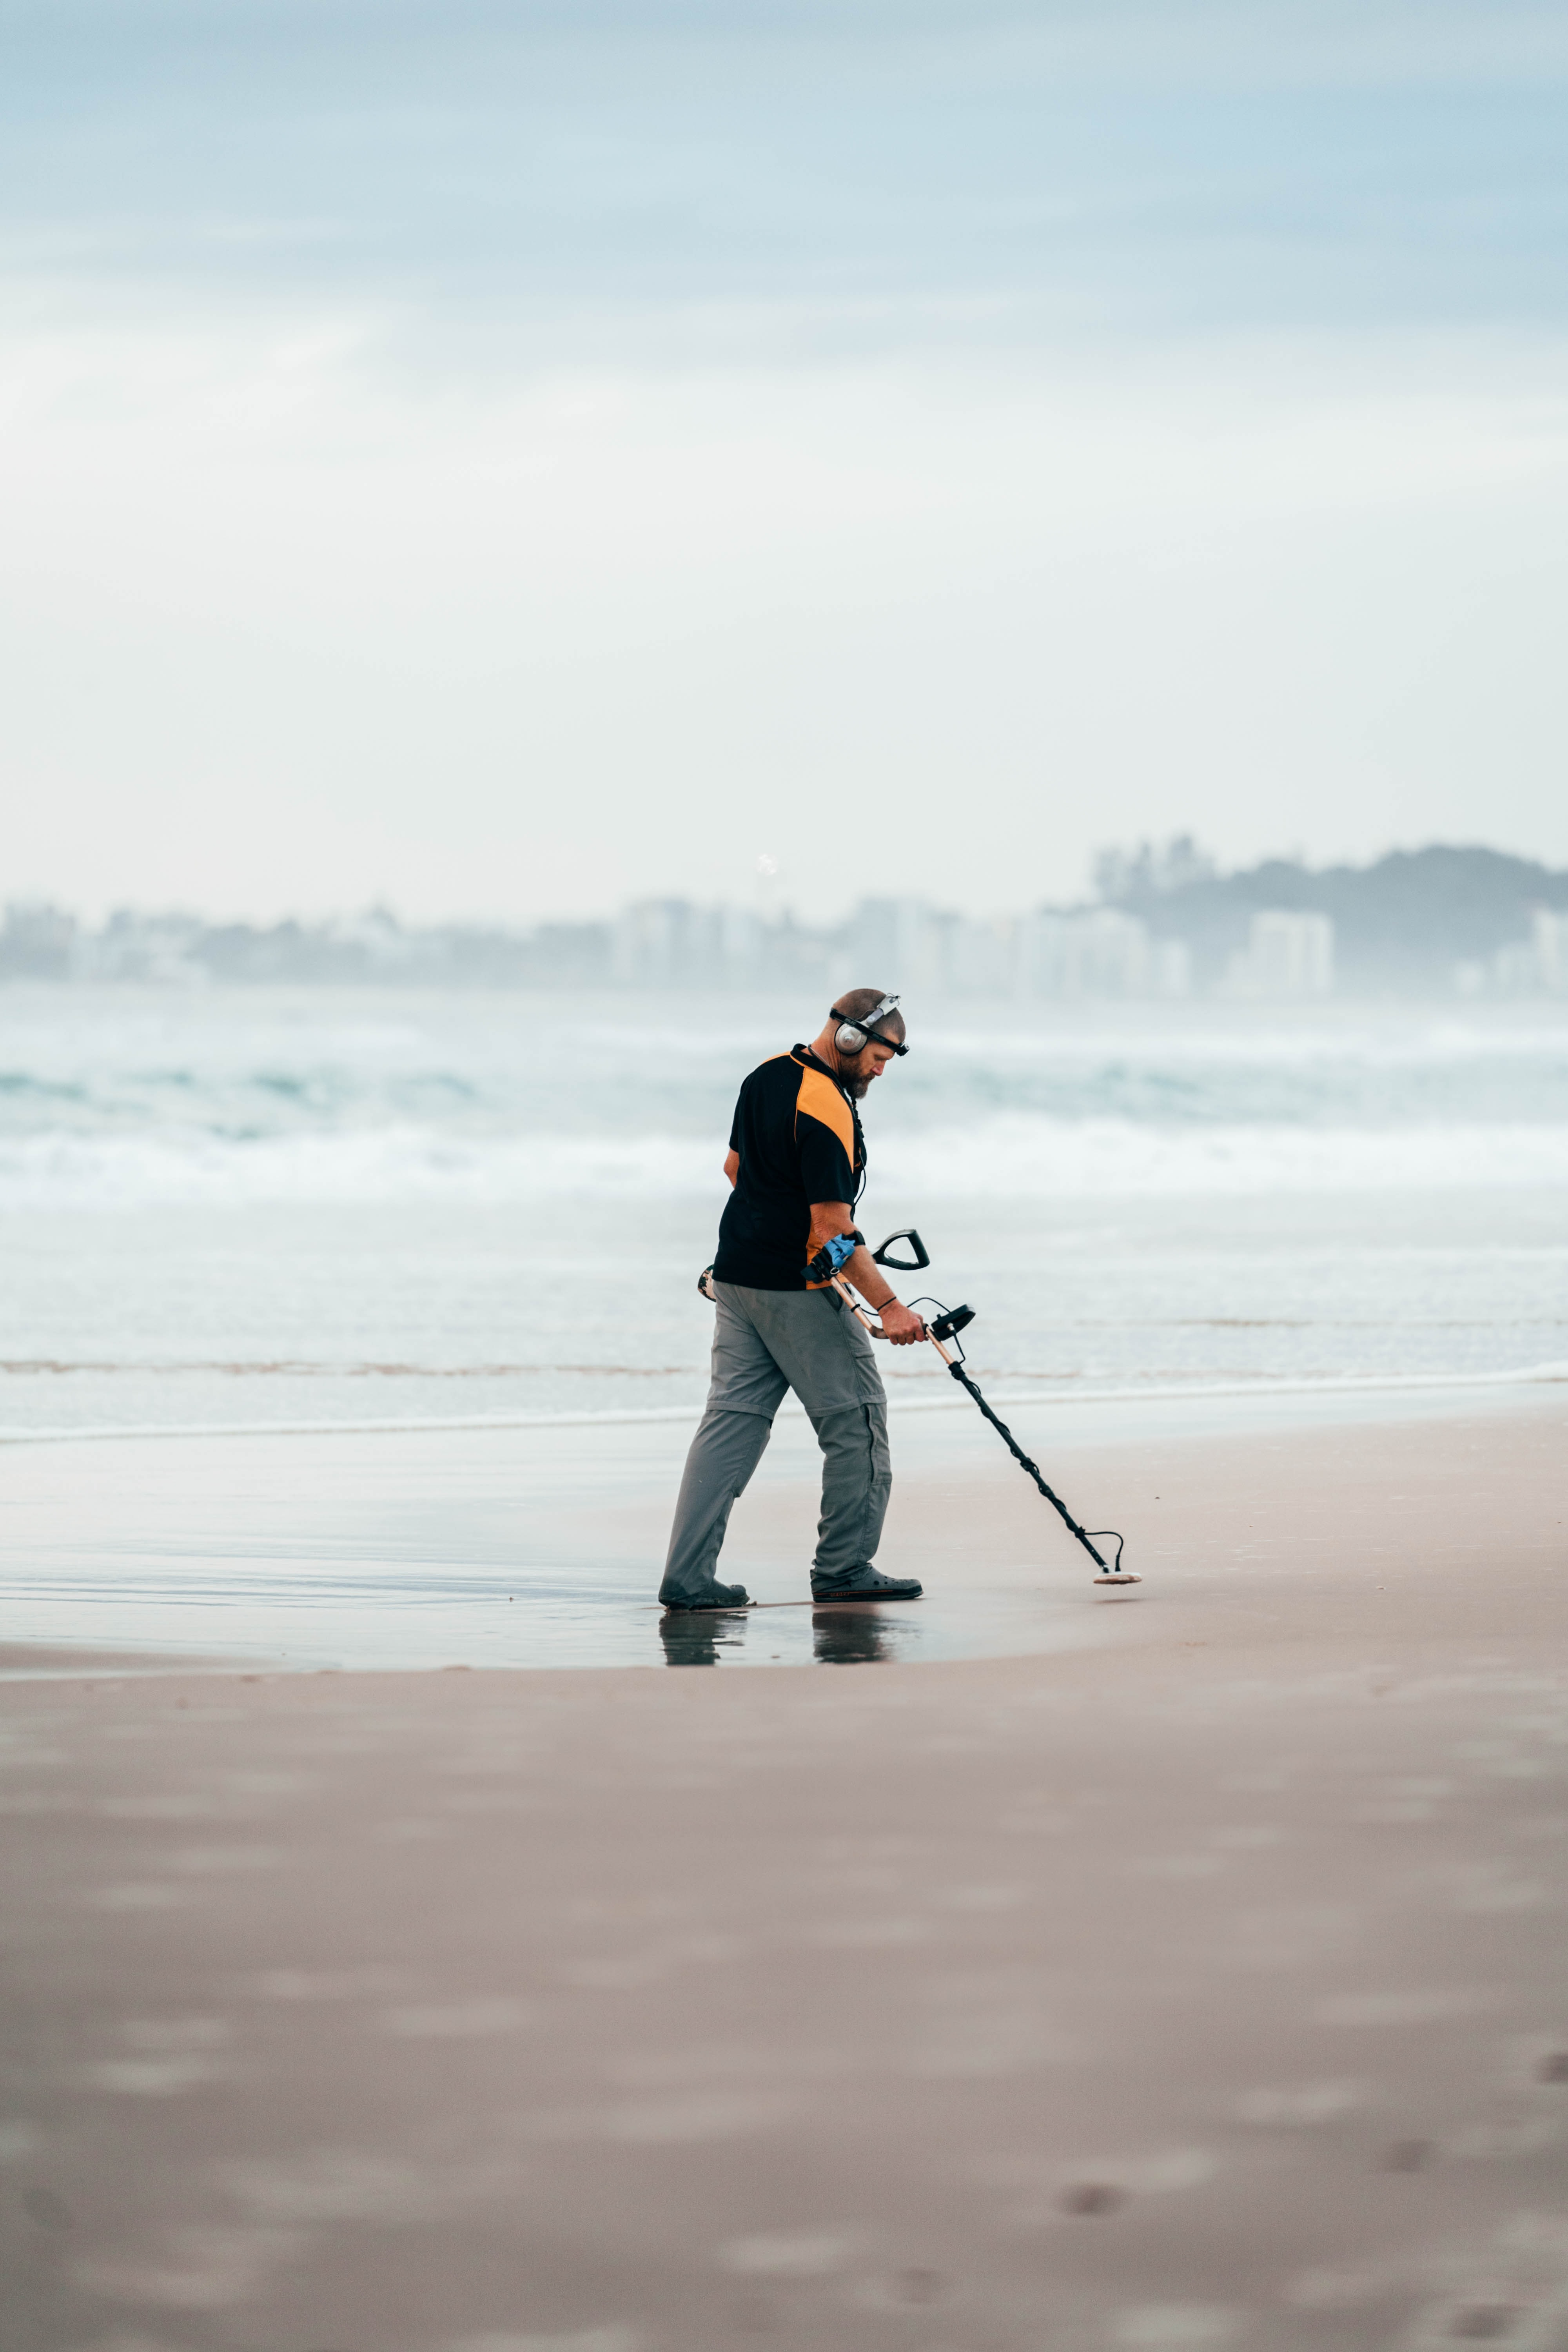 A man uses his metal detector on a beach   Photo: Unsplash/Carnaby Gilany